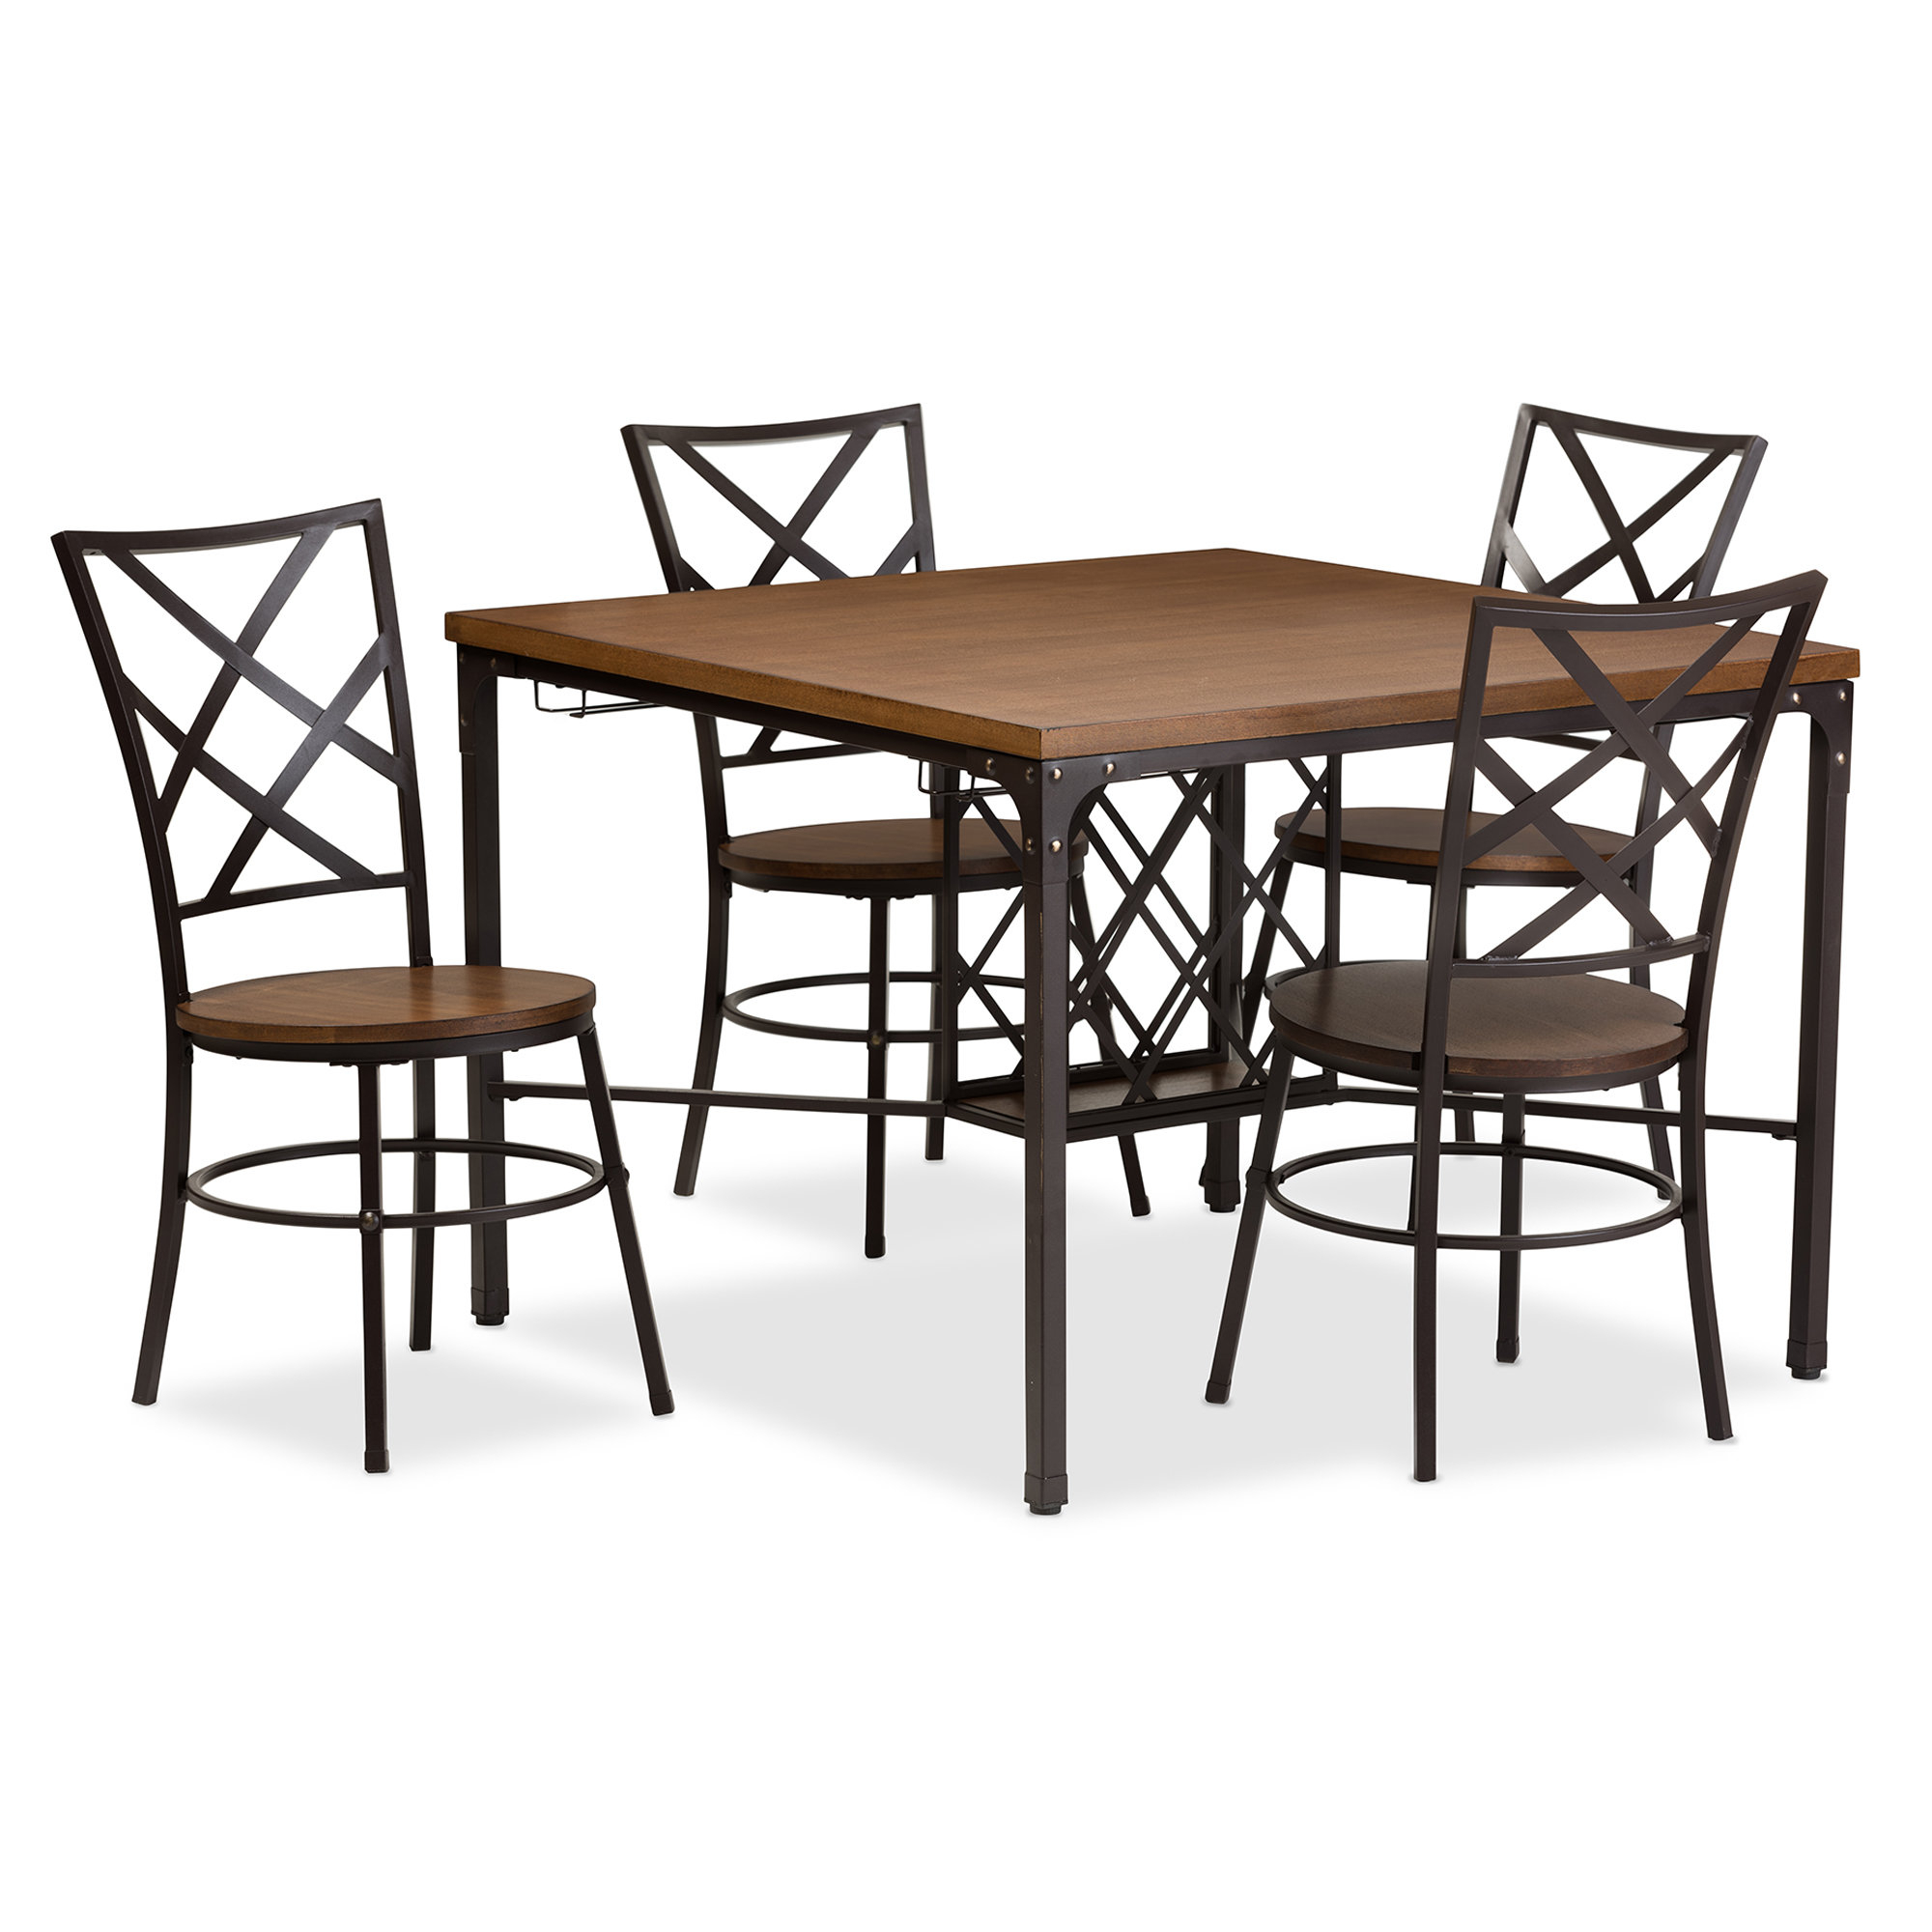 Calla 5 Piece Dining Set Throughout Most Recently Released Ganya 5 Piece Dining Sets (Photo 4 of 20)